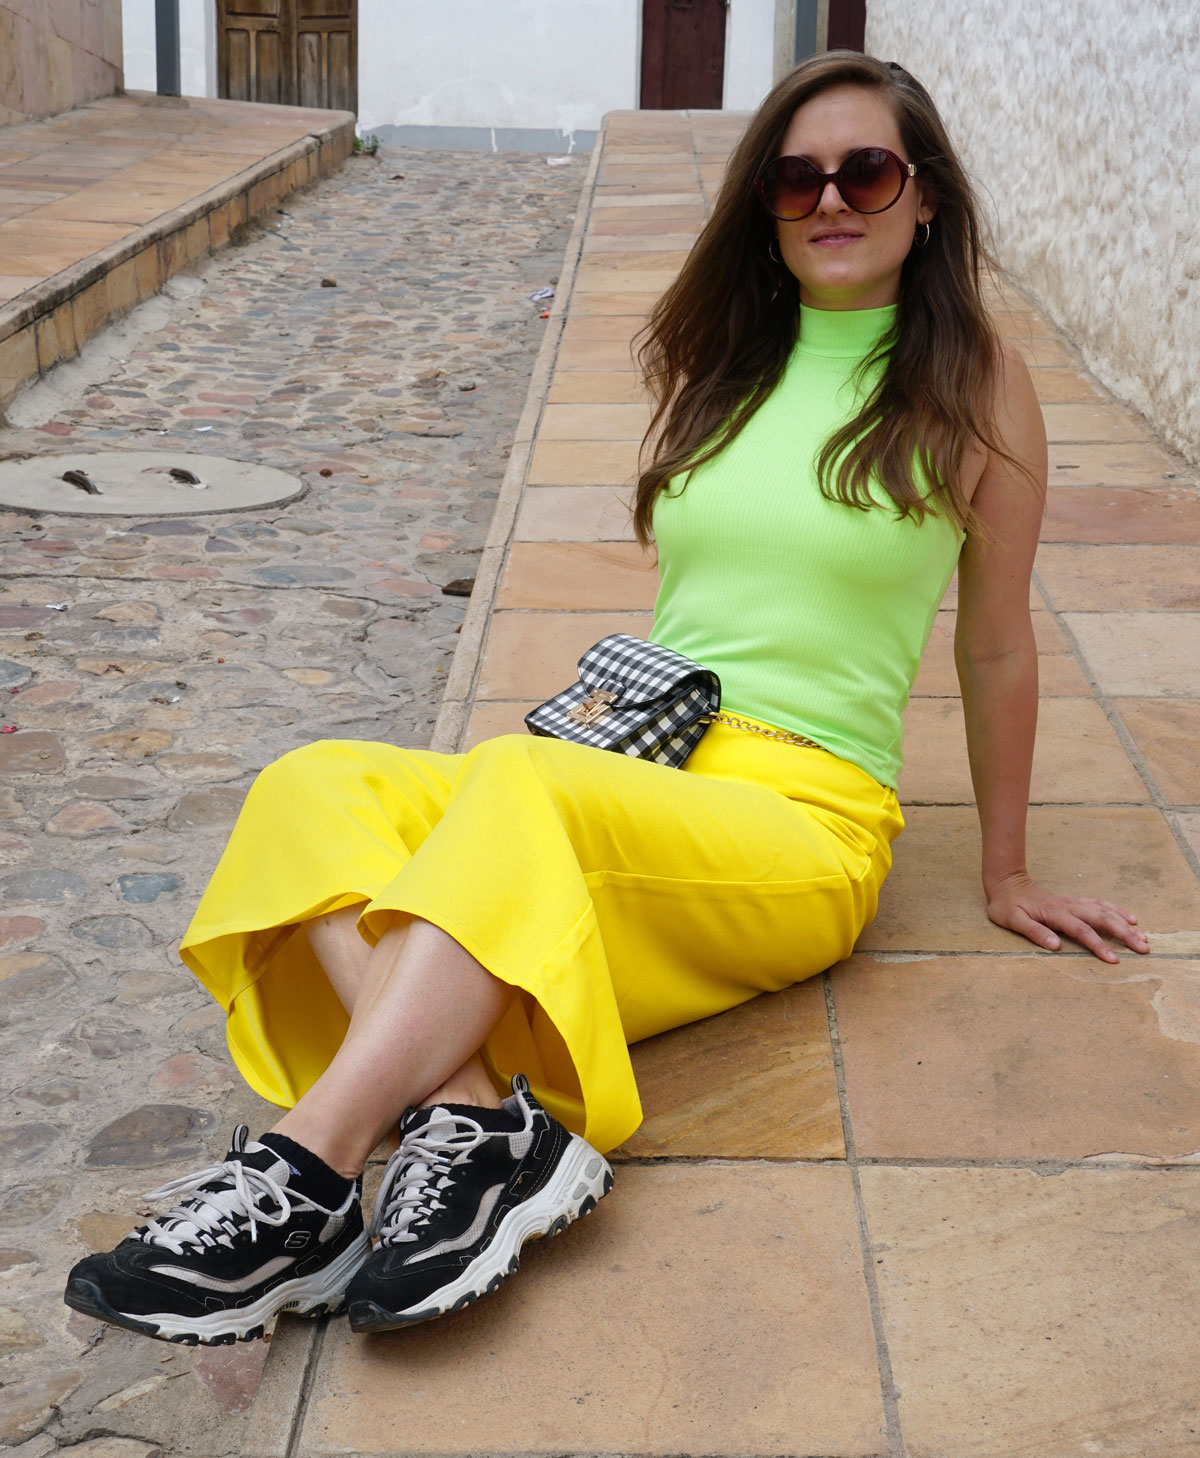 sunshine yellow pants with a neon green shirt, sneakers from Skechers and a bag from Aldo.